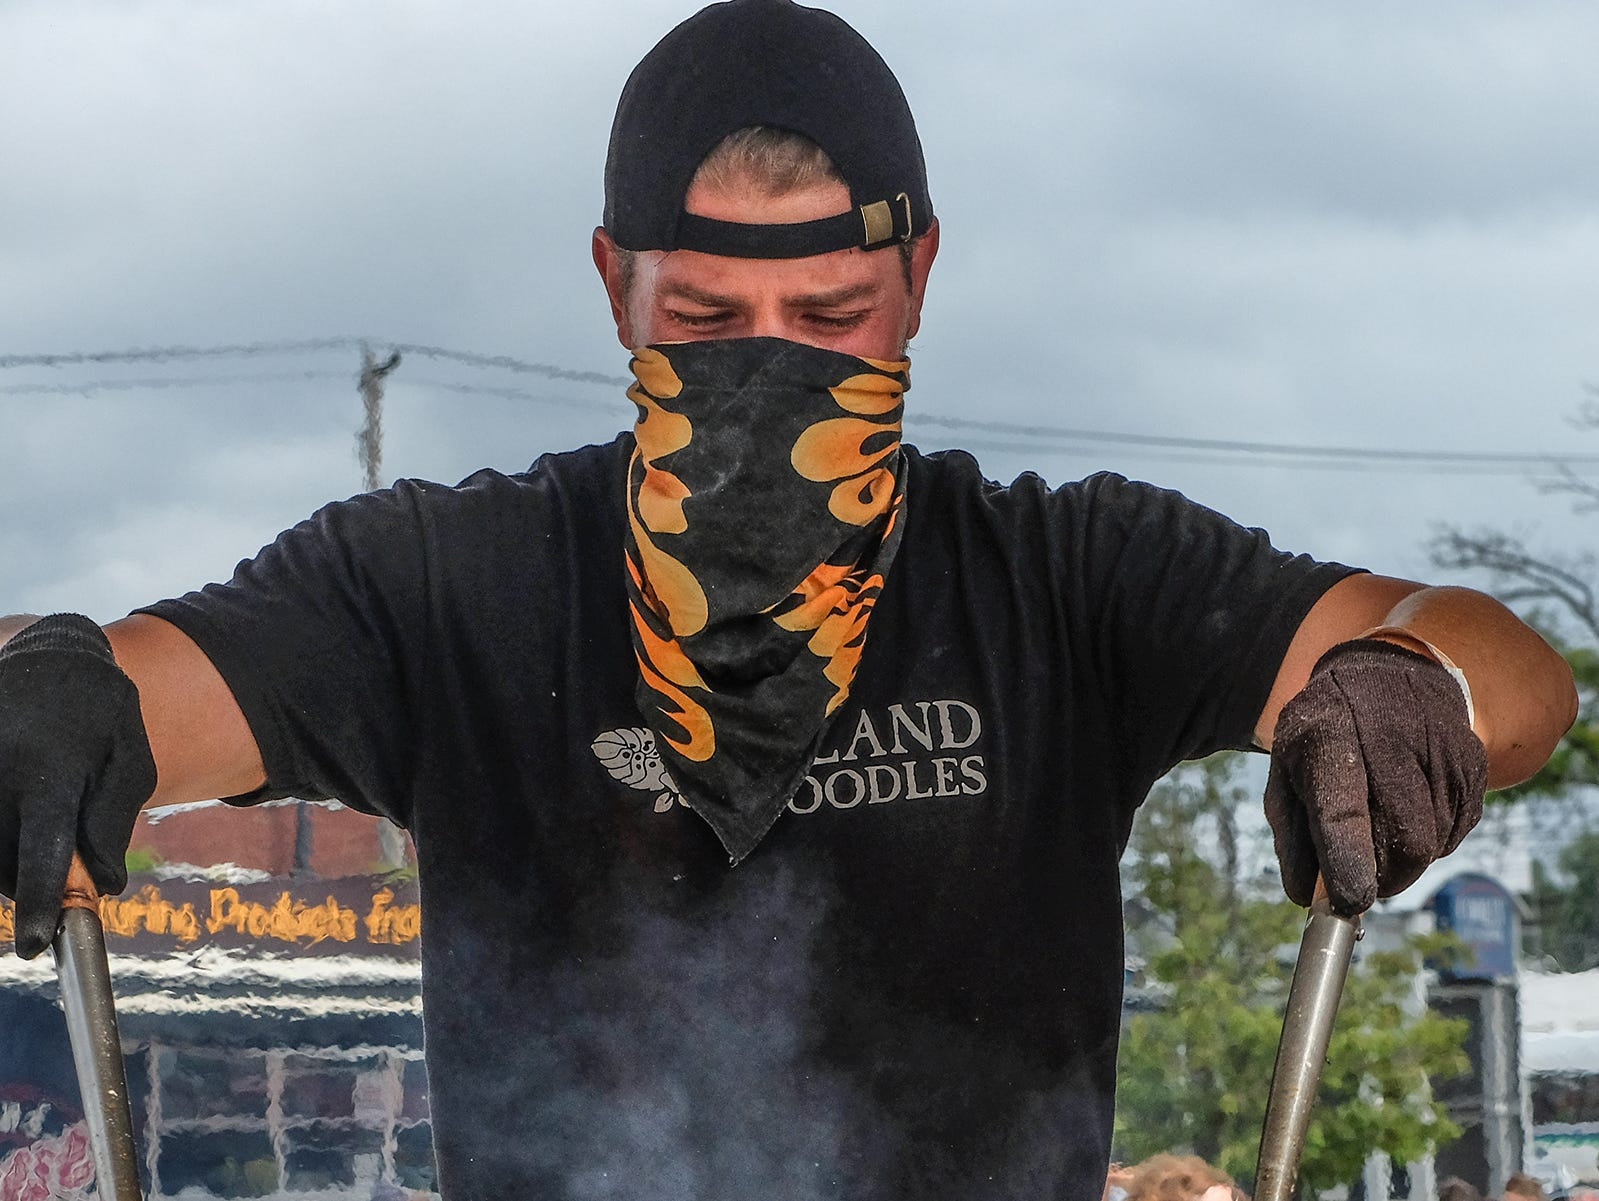 Jeremy Rowe from the Island Noodle food truck stirs up a fiery batch of vegetables and noodles at the Food Truck Mash-up on Saturday, Aug. 25, 2018 at Cooley Law School Stadium.